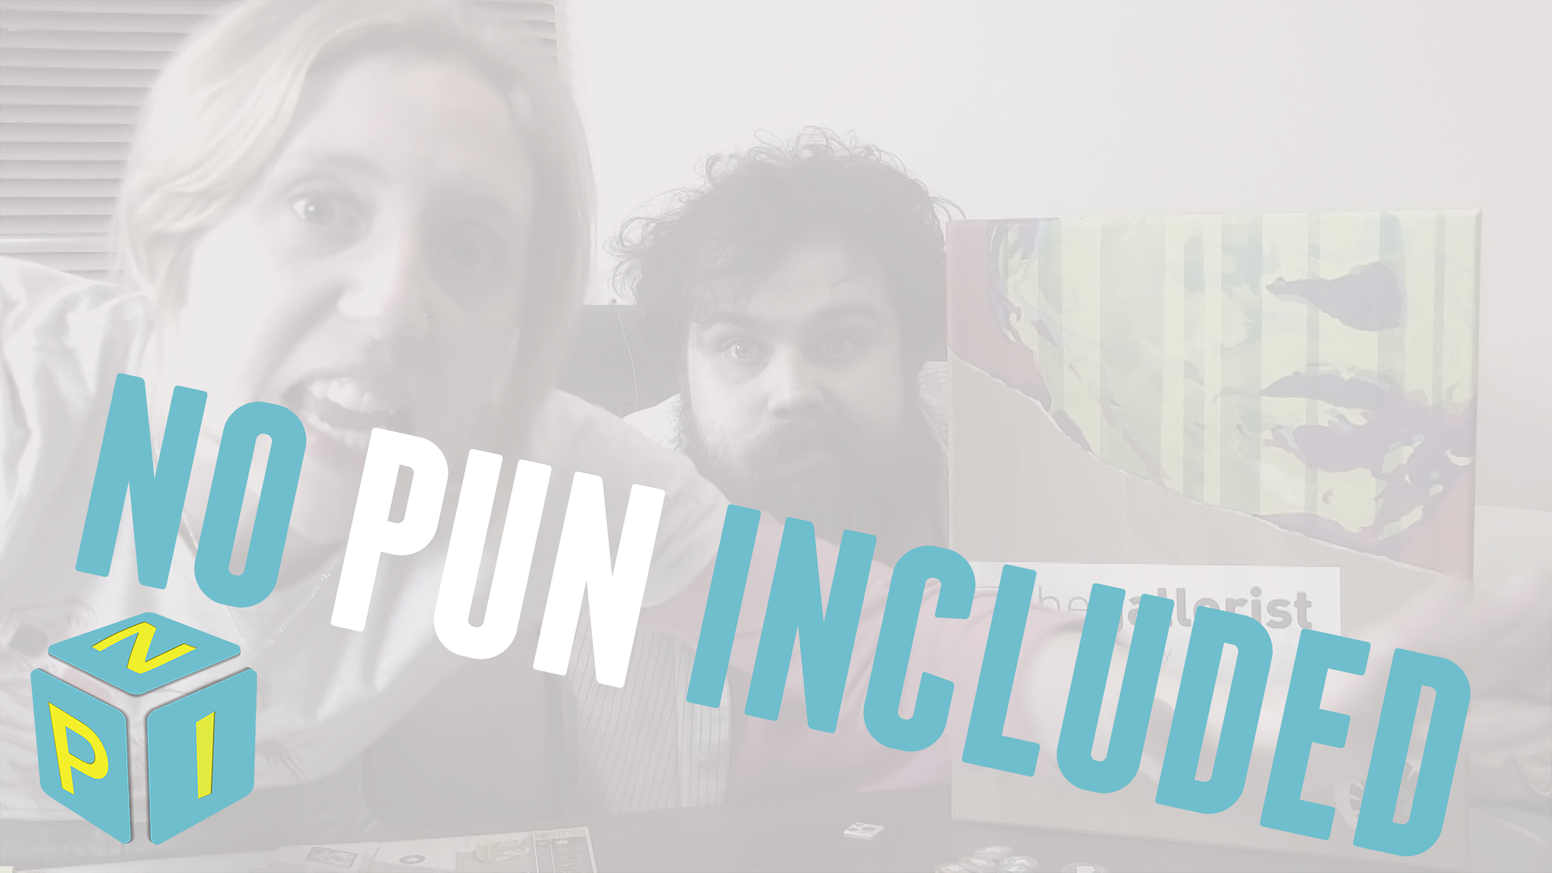 For three years we (Elaine & Efka) have made funny, analytical videos reviewing board games, but now we need your help to grow!